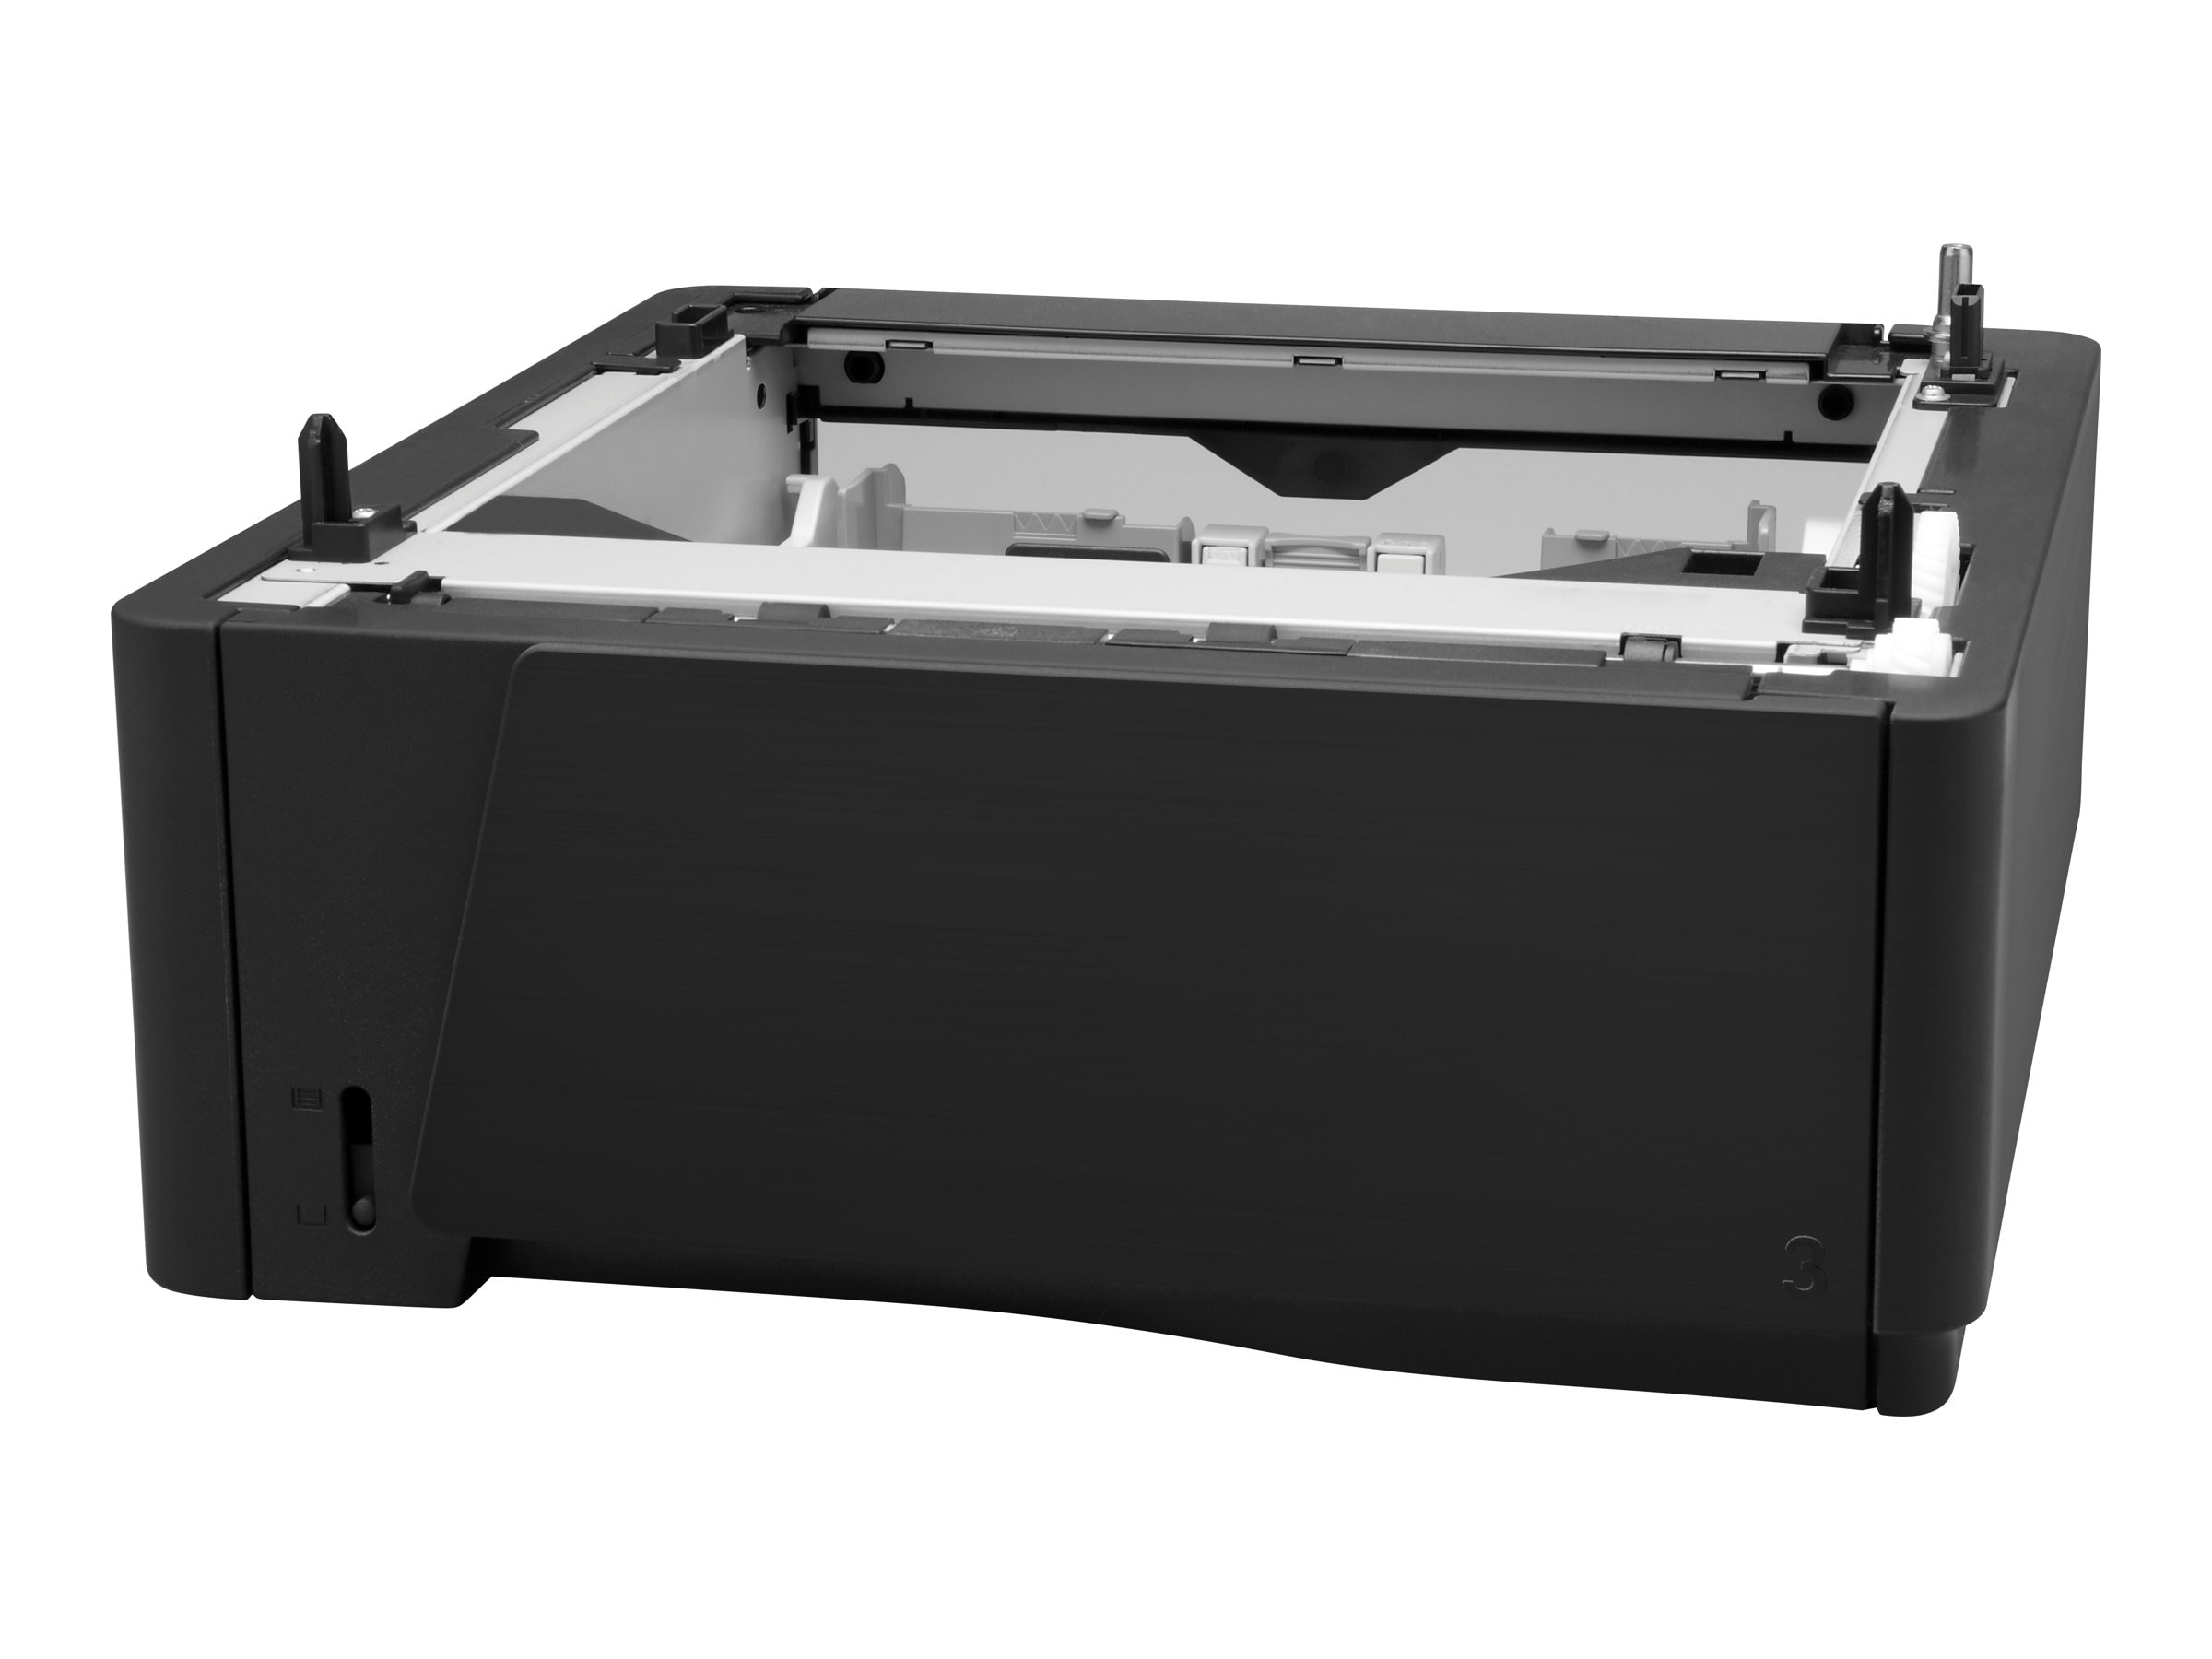 HP LaserJet 500-sheet Feeder Tray for HP LaserJet Pro 400 MFP M425